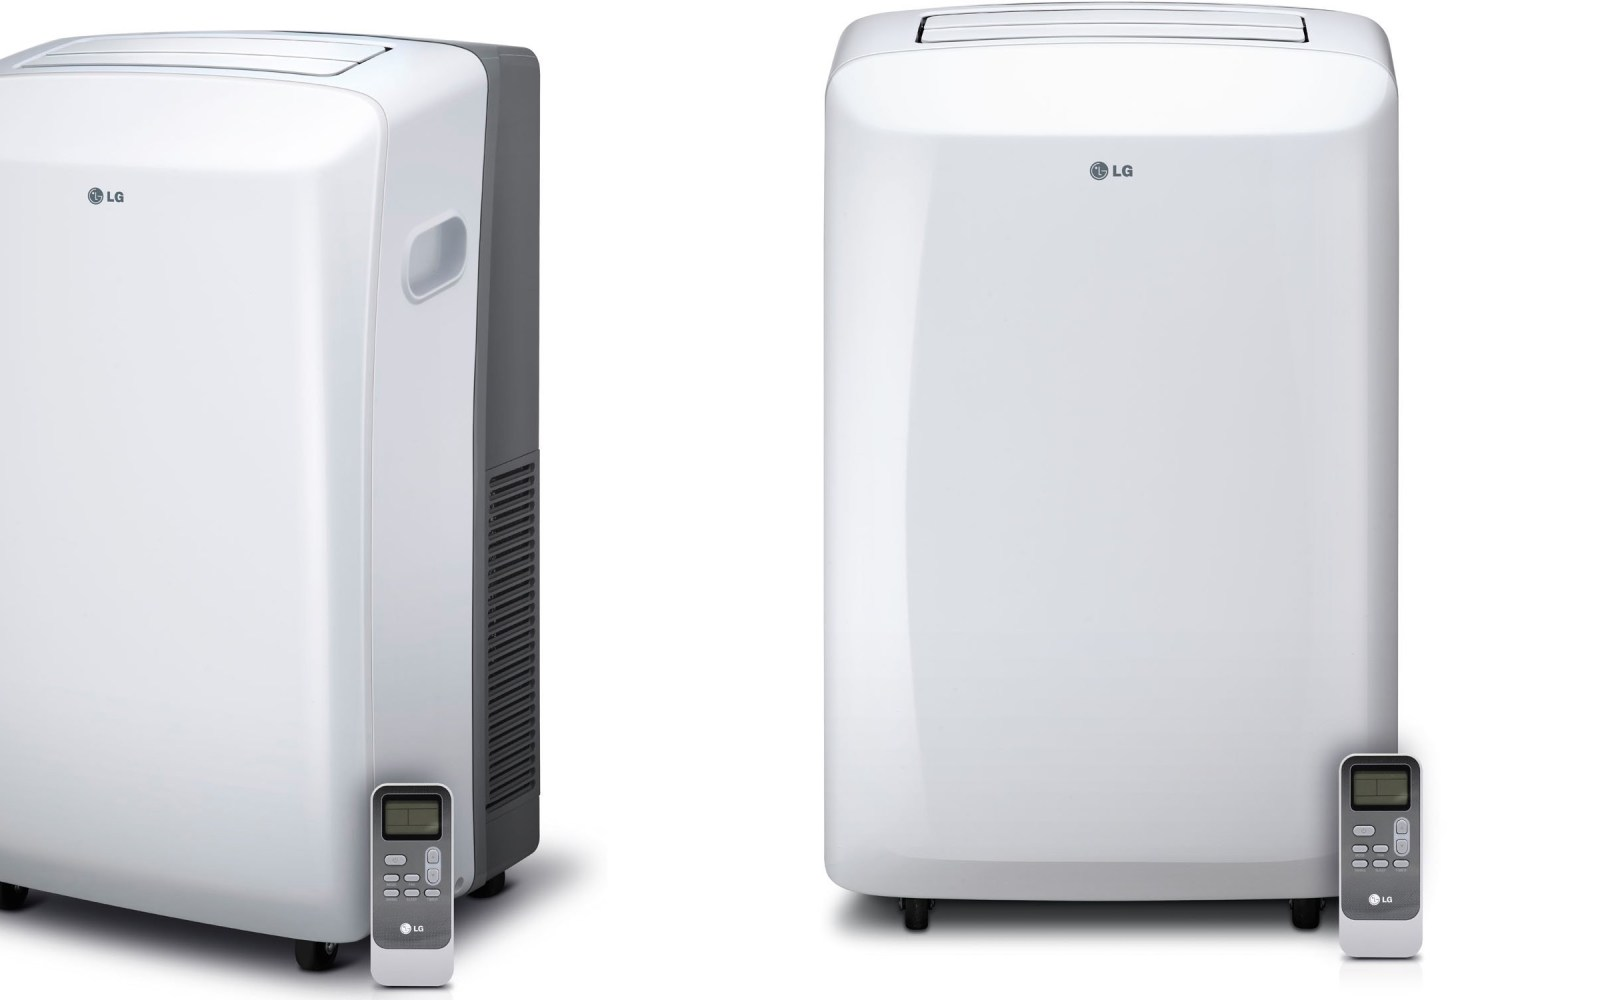 It is going to be hot af this weekend, grab a 10,000 BTU LG Portable AirCon w/remote for $279 Shipped